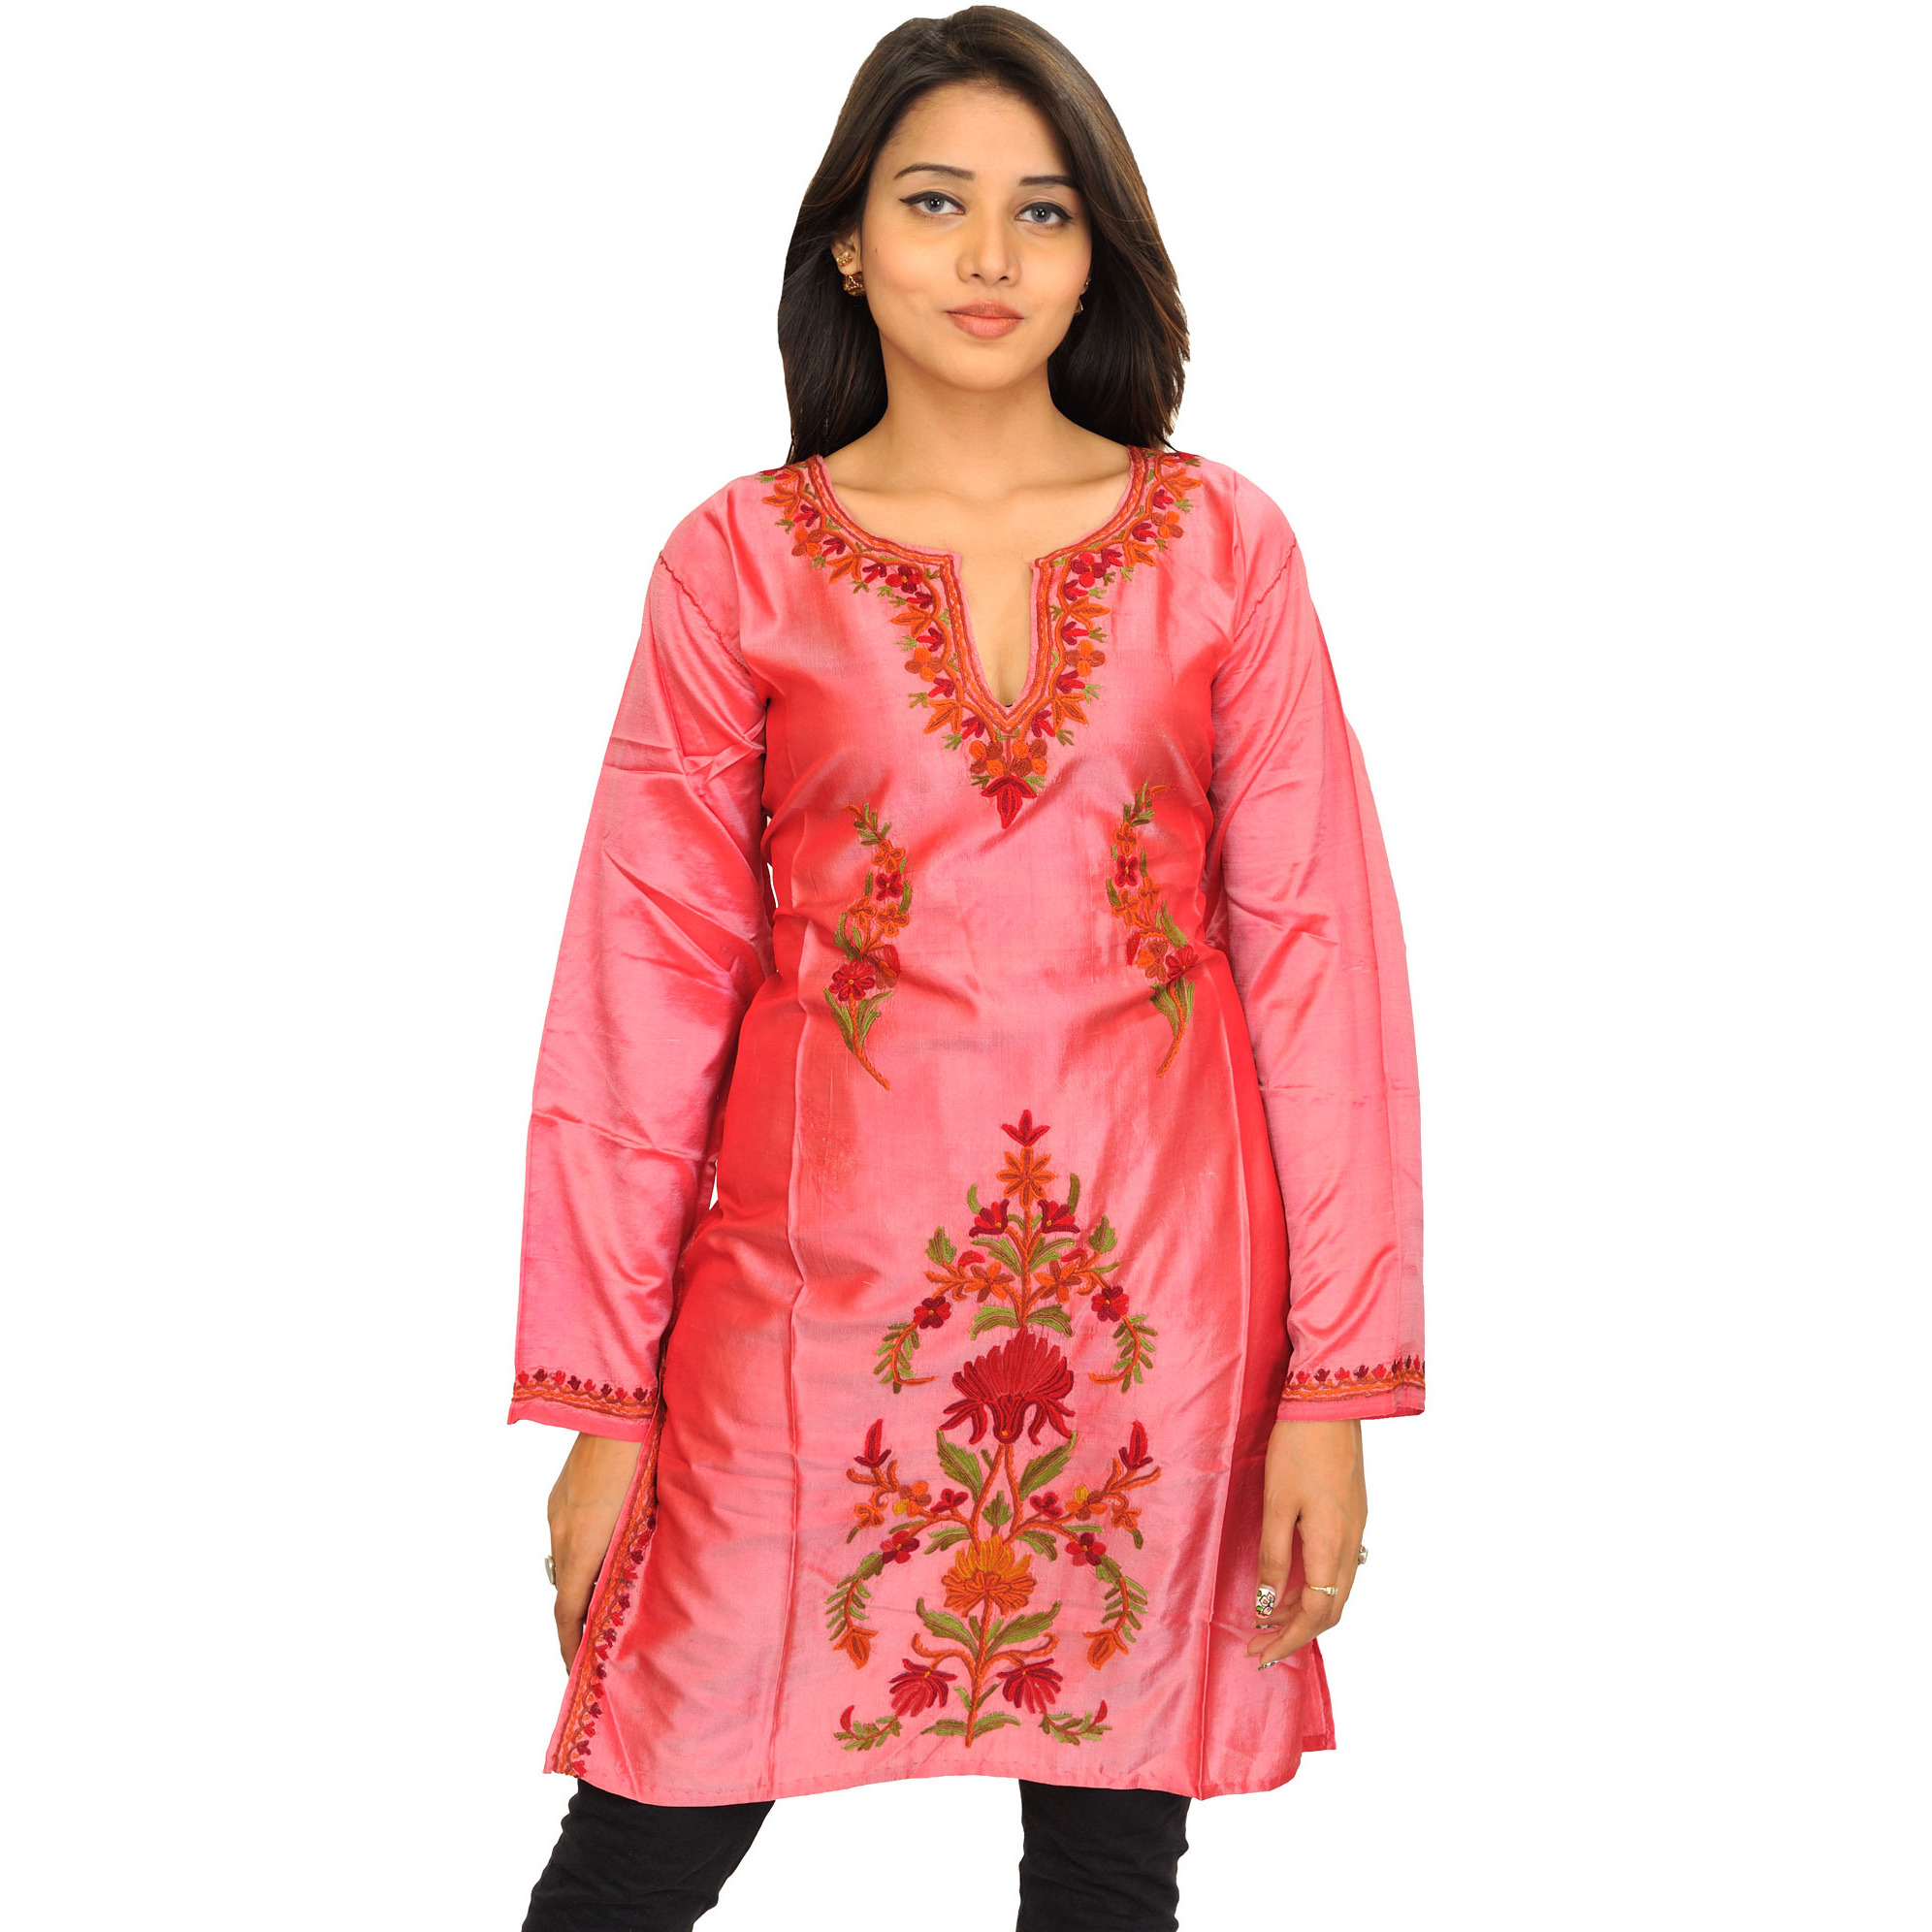 Strawberry-Ice Kurti from Kashmir with Ari Embroidery by Hand